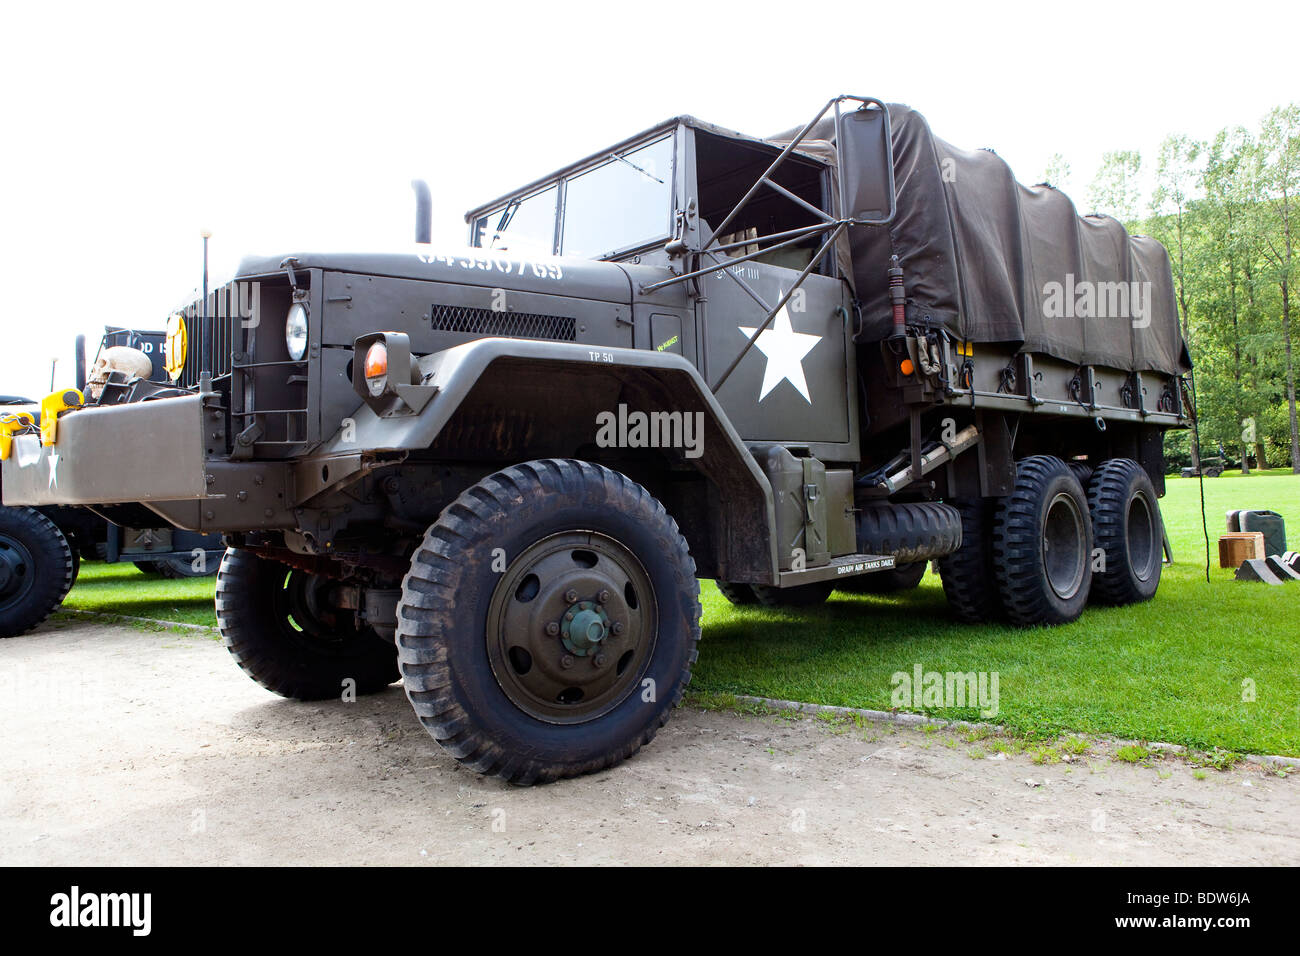 Chevrolet US army truck - Stock Image